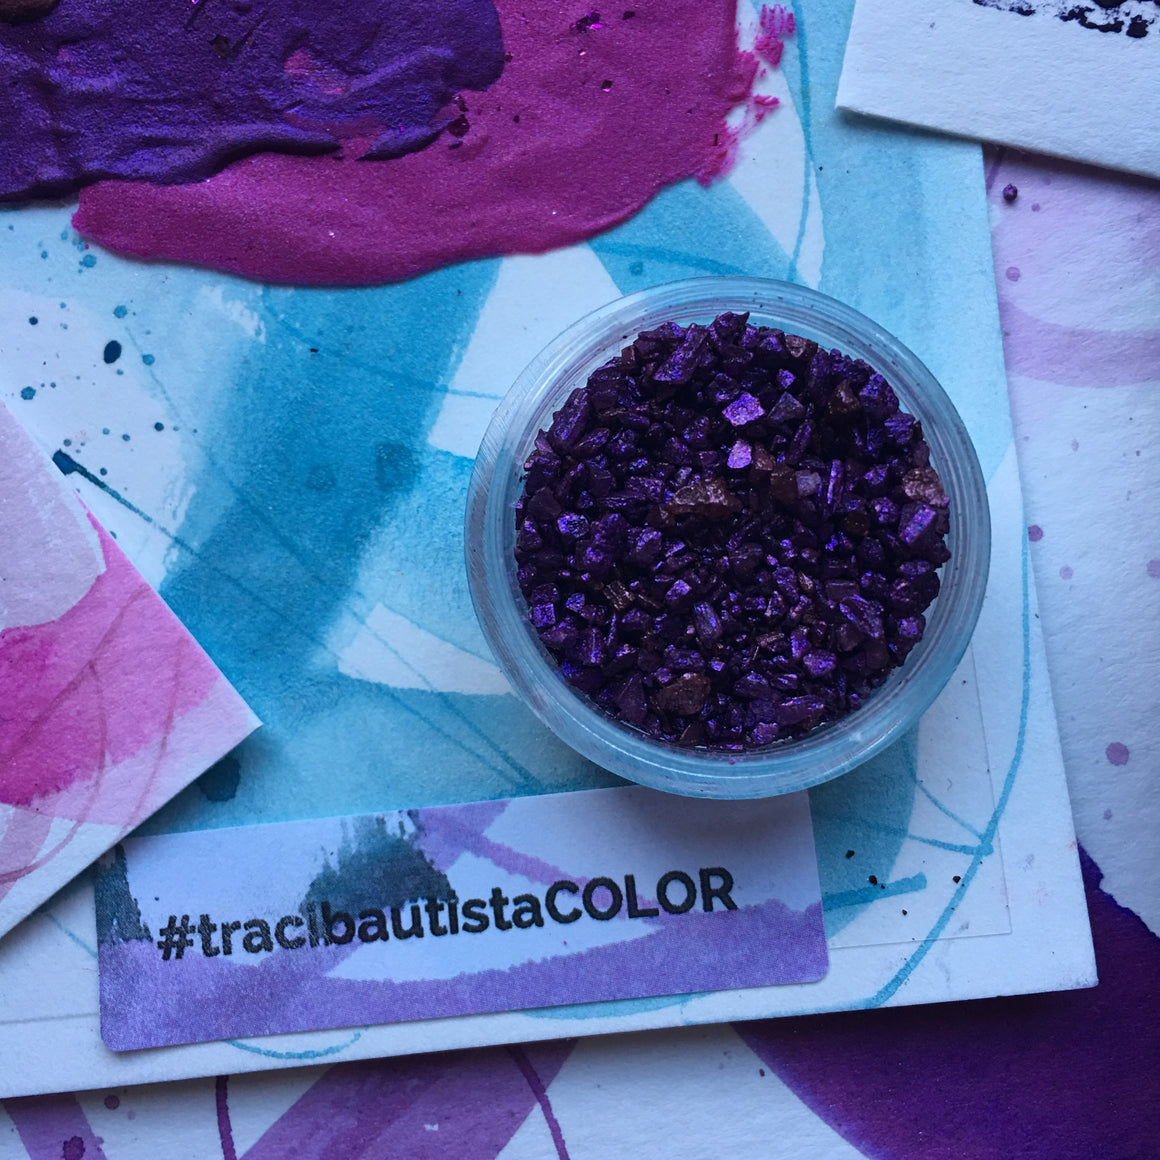 #tracibautistaCOLOR ~ SWEETHEART artisanal watercolor collection no. 1